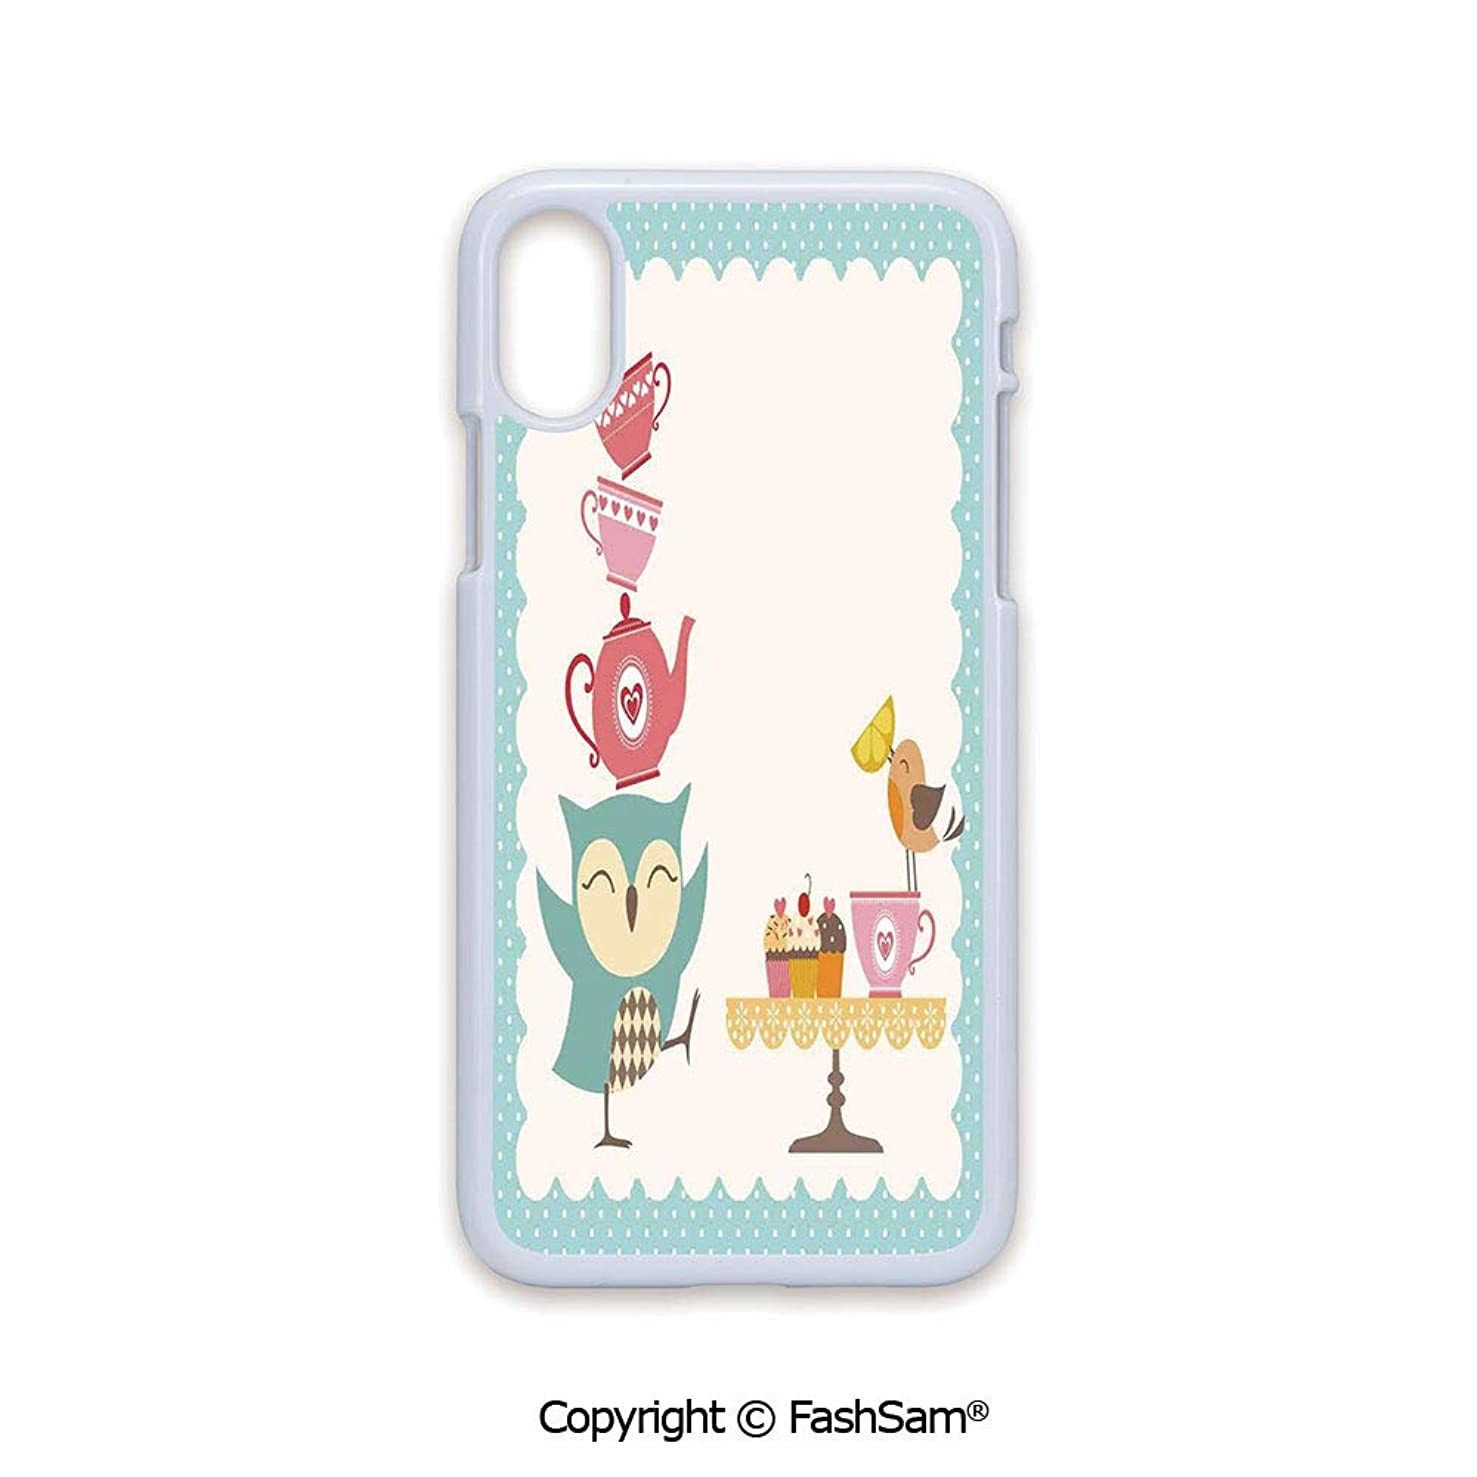 Plastic Rigid Mobile Phone case Compatible with iPhone X Black Edge Owl at Tea Party Bird with Lemon Cupcakes and Teacups Vintage Design Border Art 2D Print Hard Plastic Phone Case